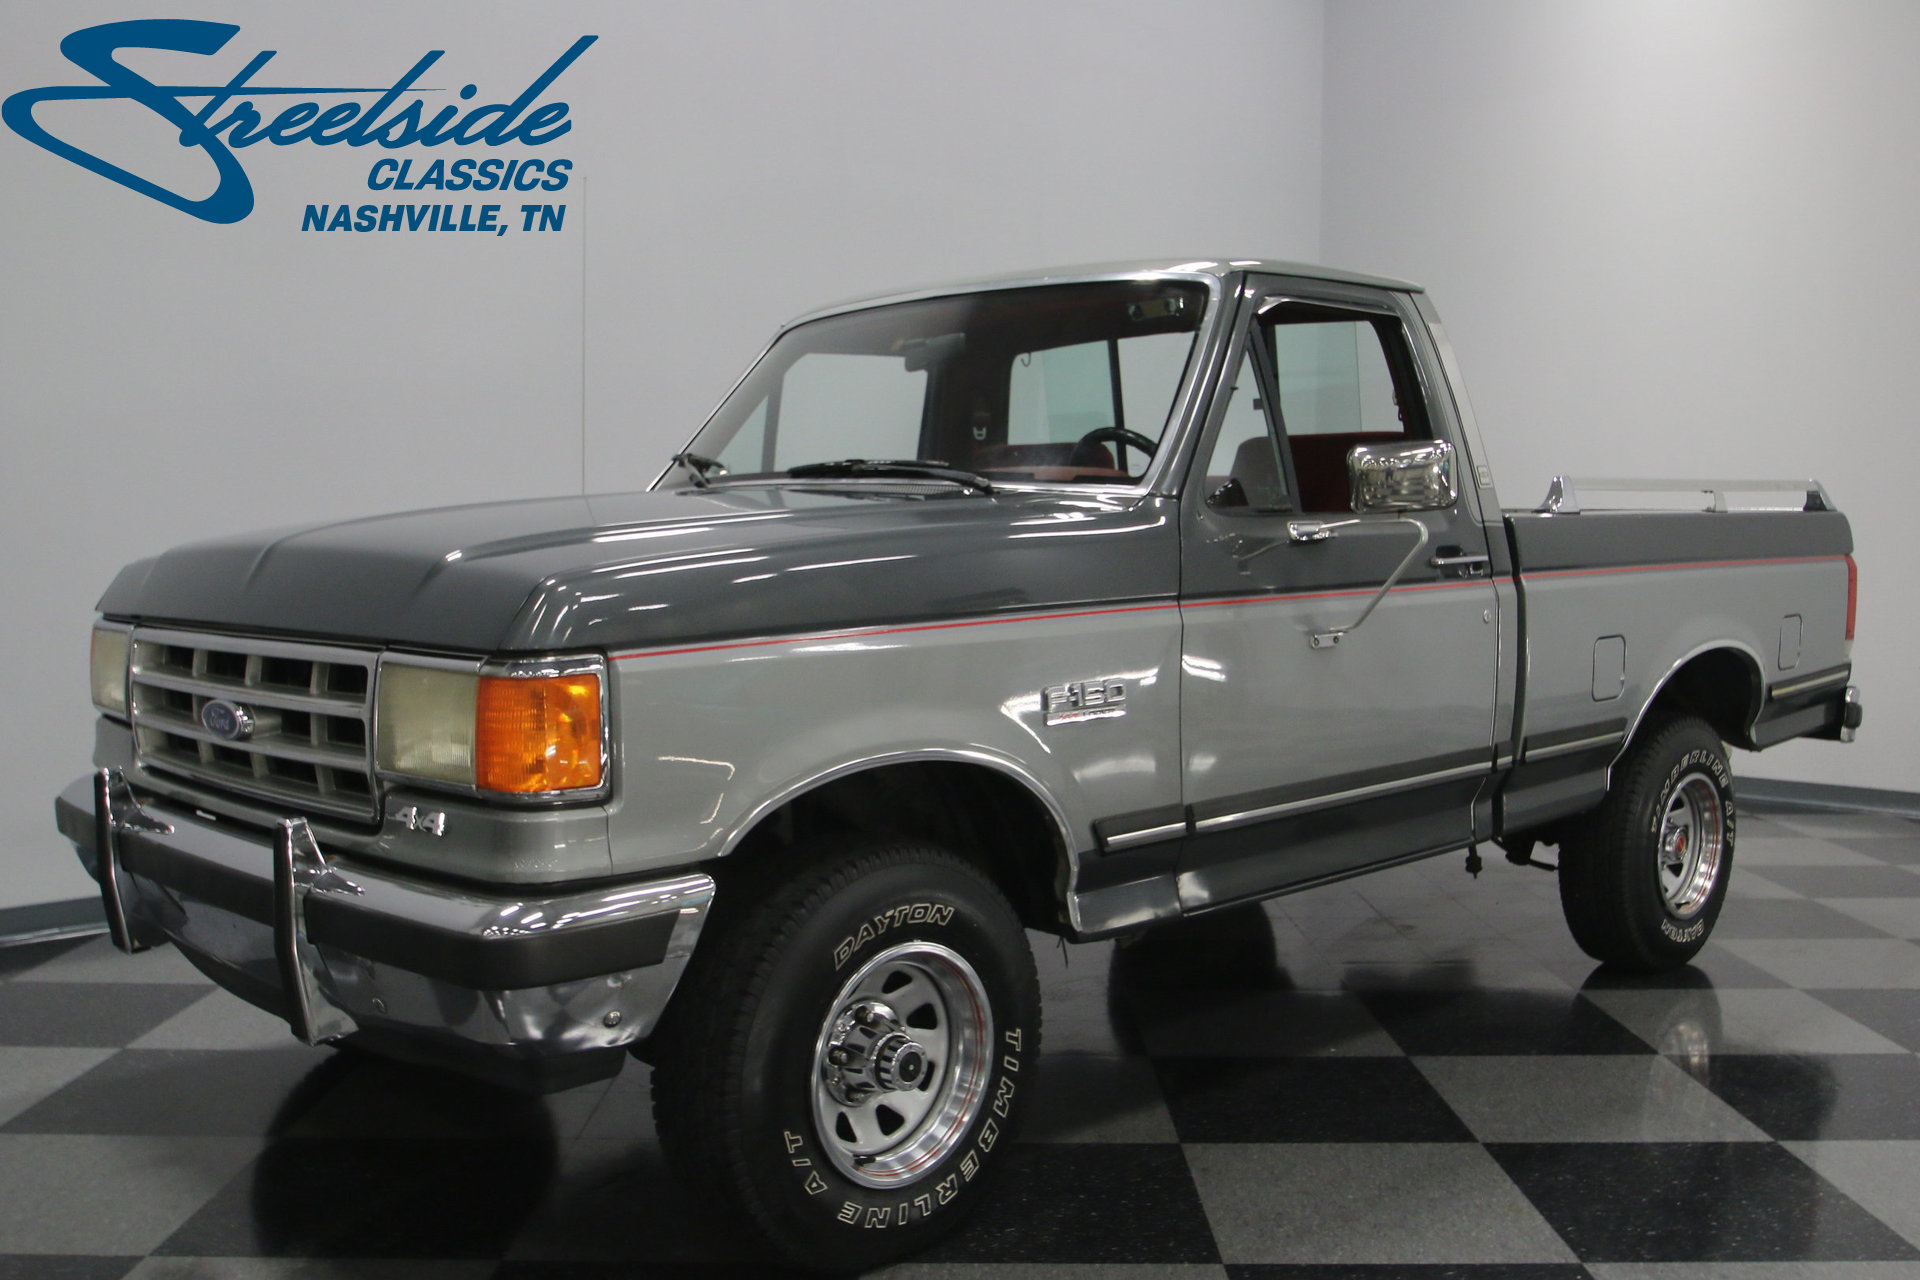 1988 ford f 150 streetside classics the nation 39 s trusted classic car consignment dealer. Black Bedroom Furniture Sets. Home Design Ideas